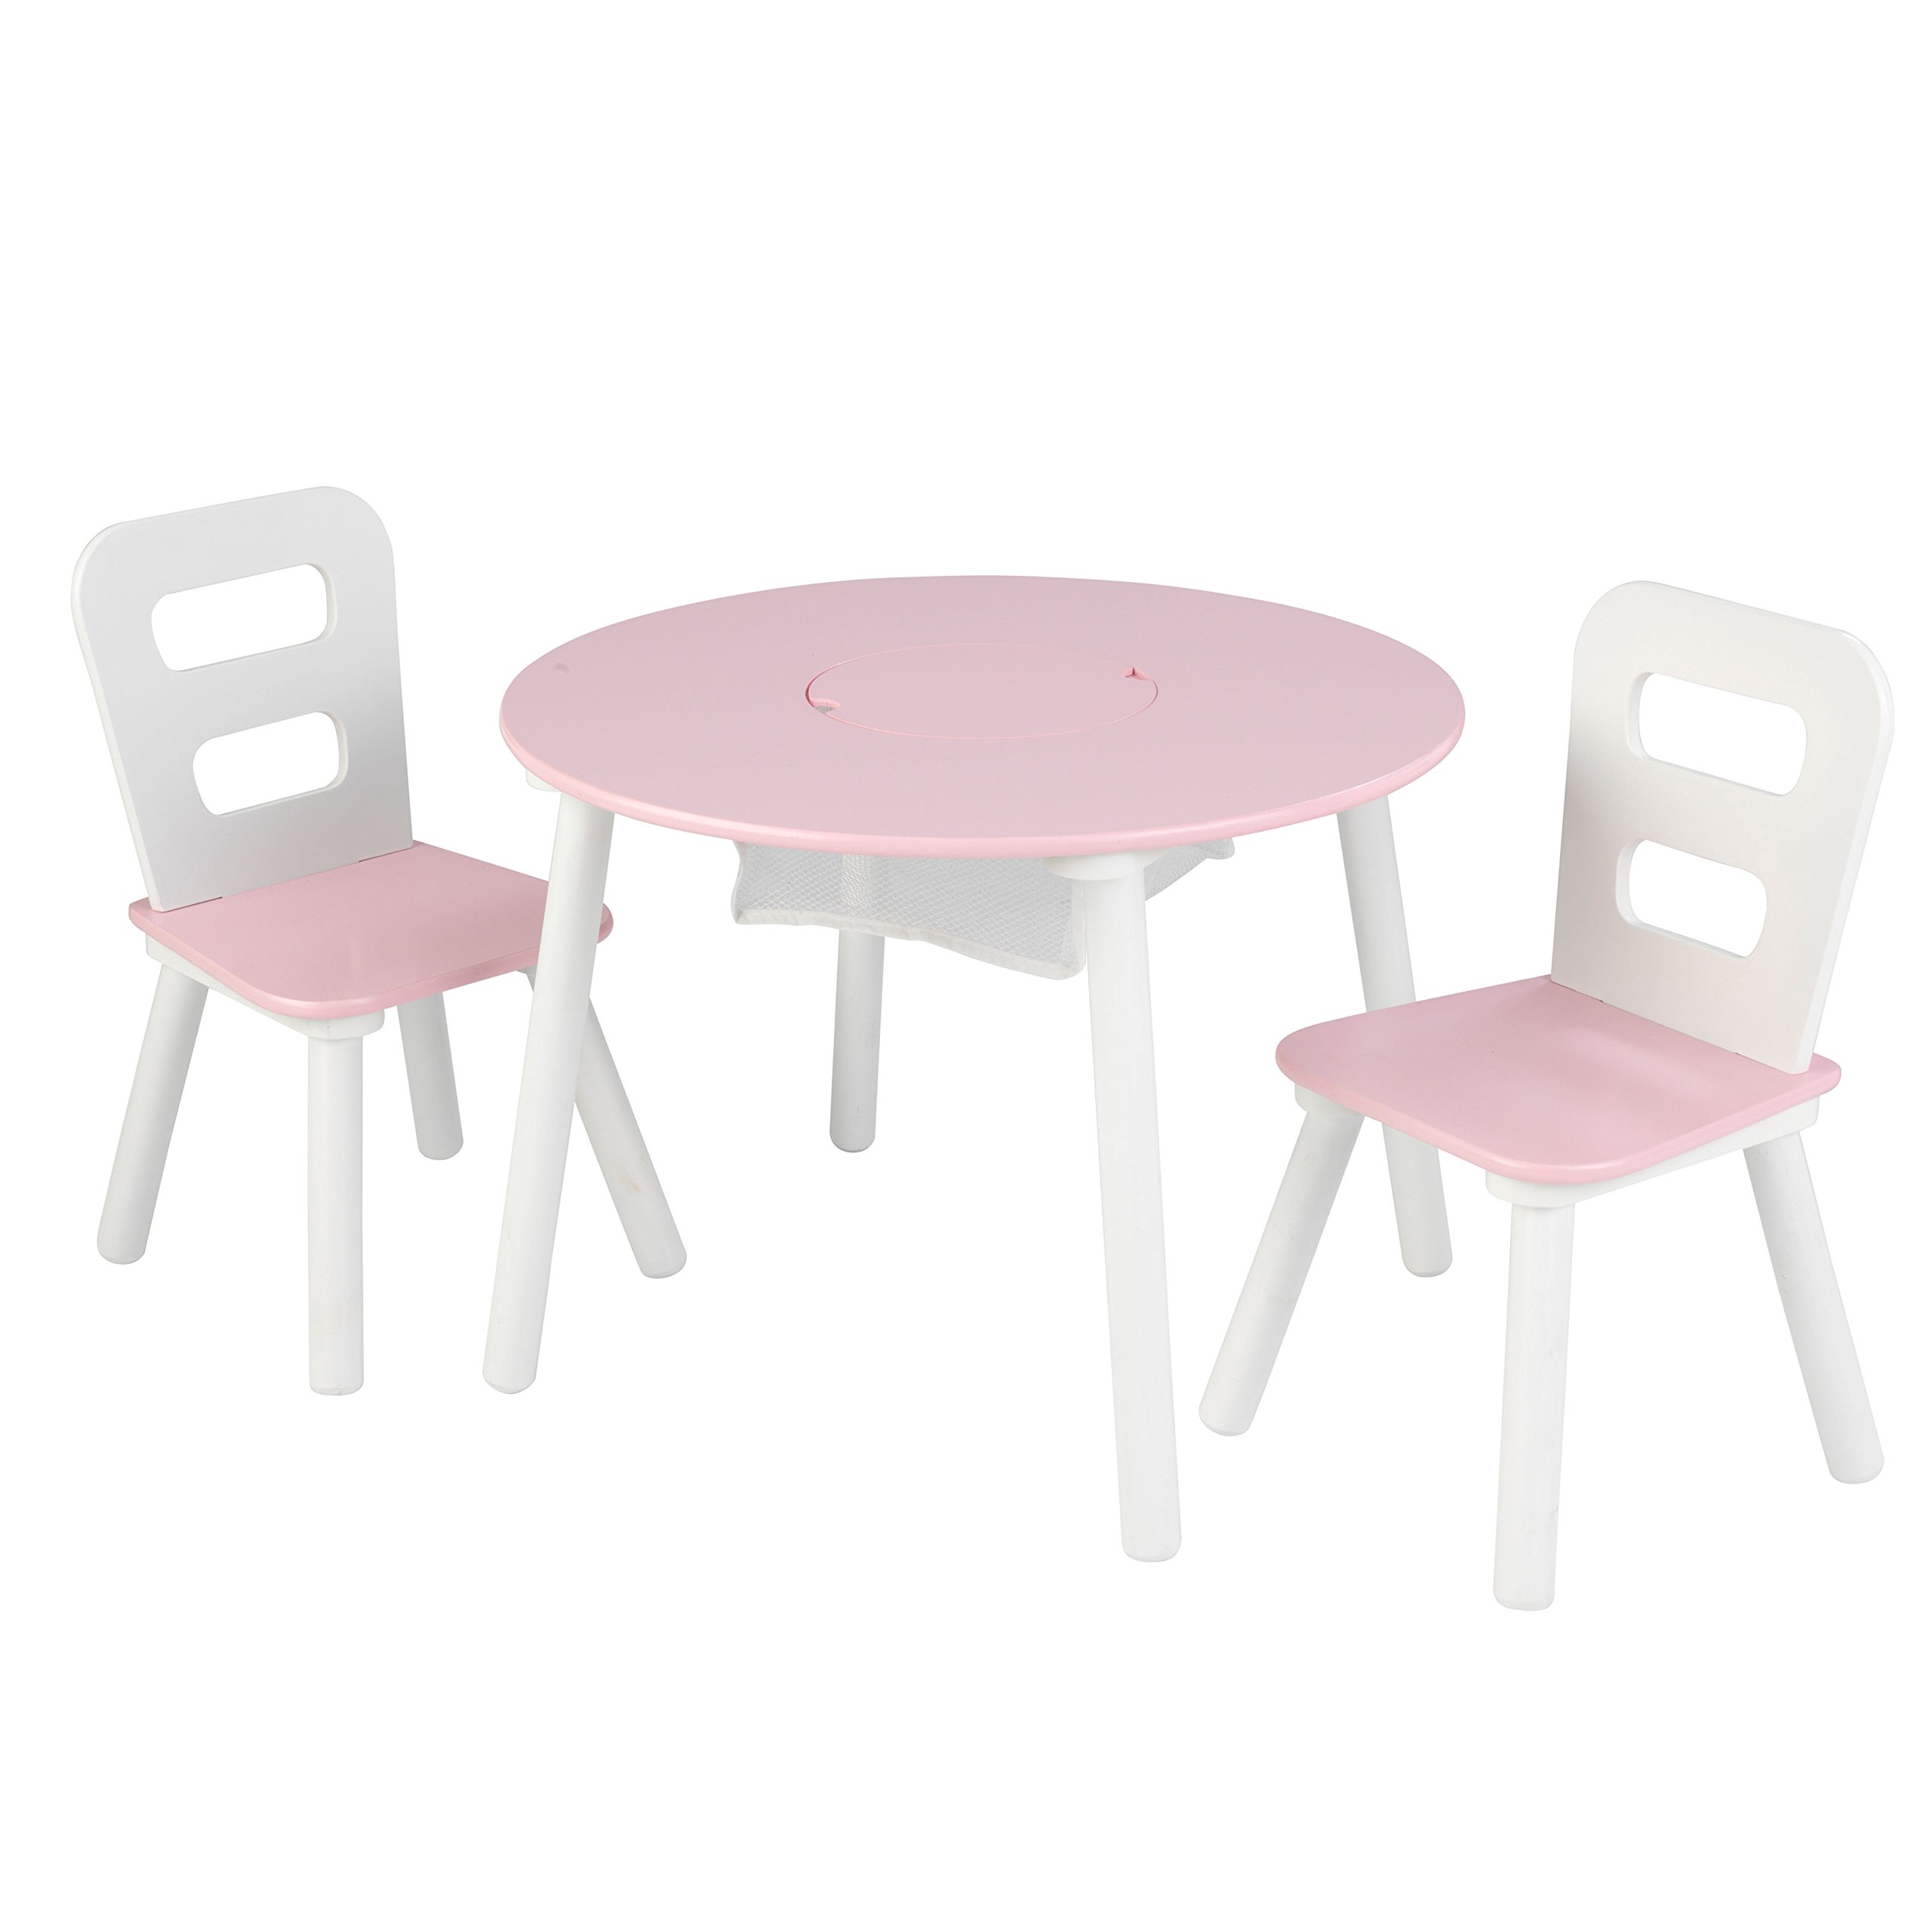 Awesome Details About Kidkraft Round Table And 2 Chair Set White Pink Pabps2019 Chair Design Images Pabps2019Com